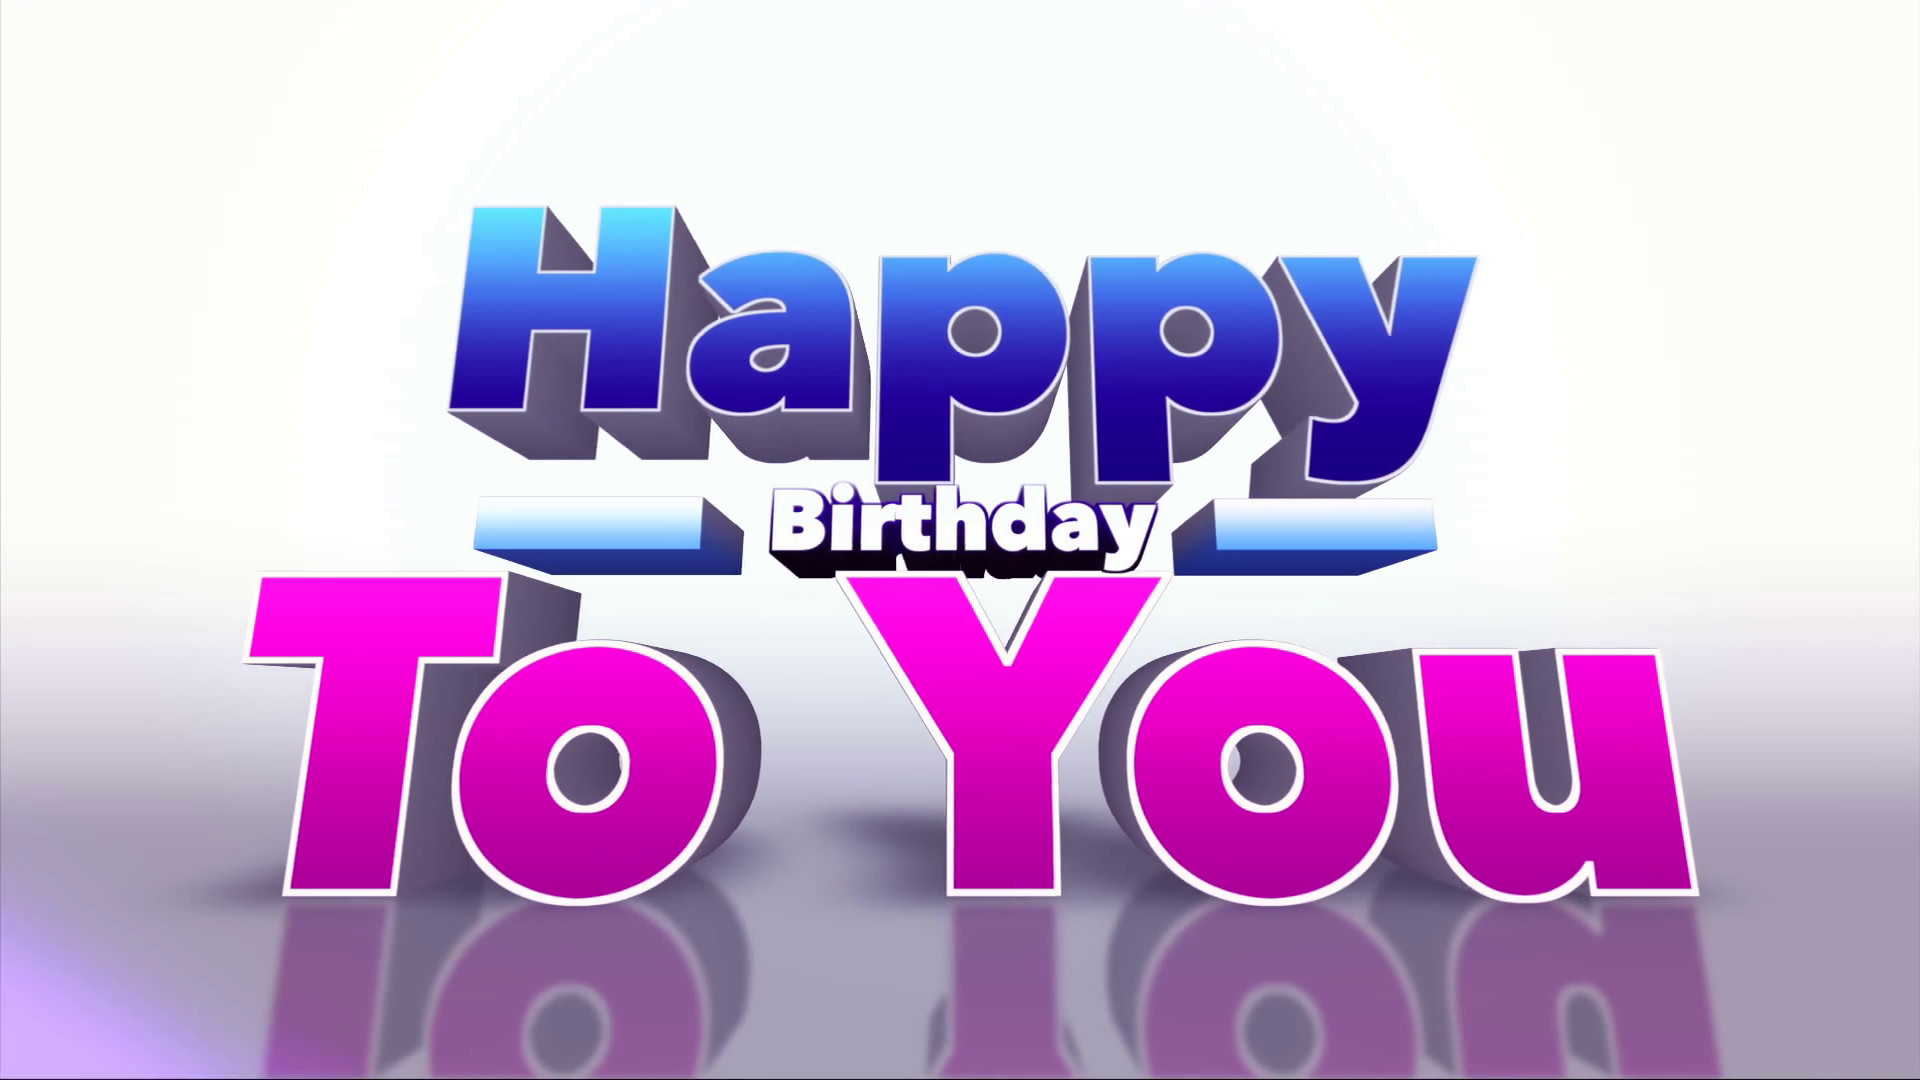 Happy Birthday Wallpapers with Name (61+ images)